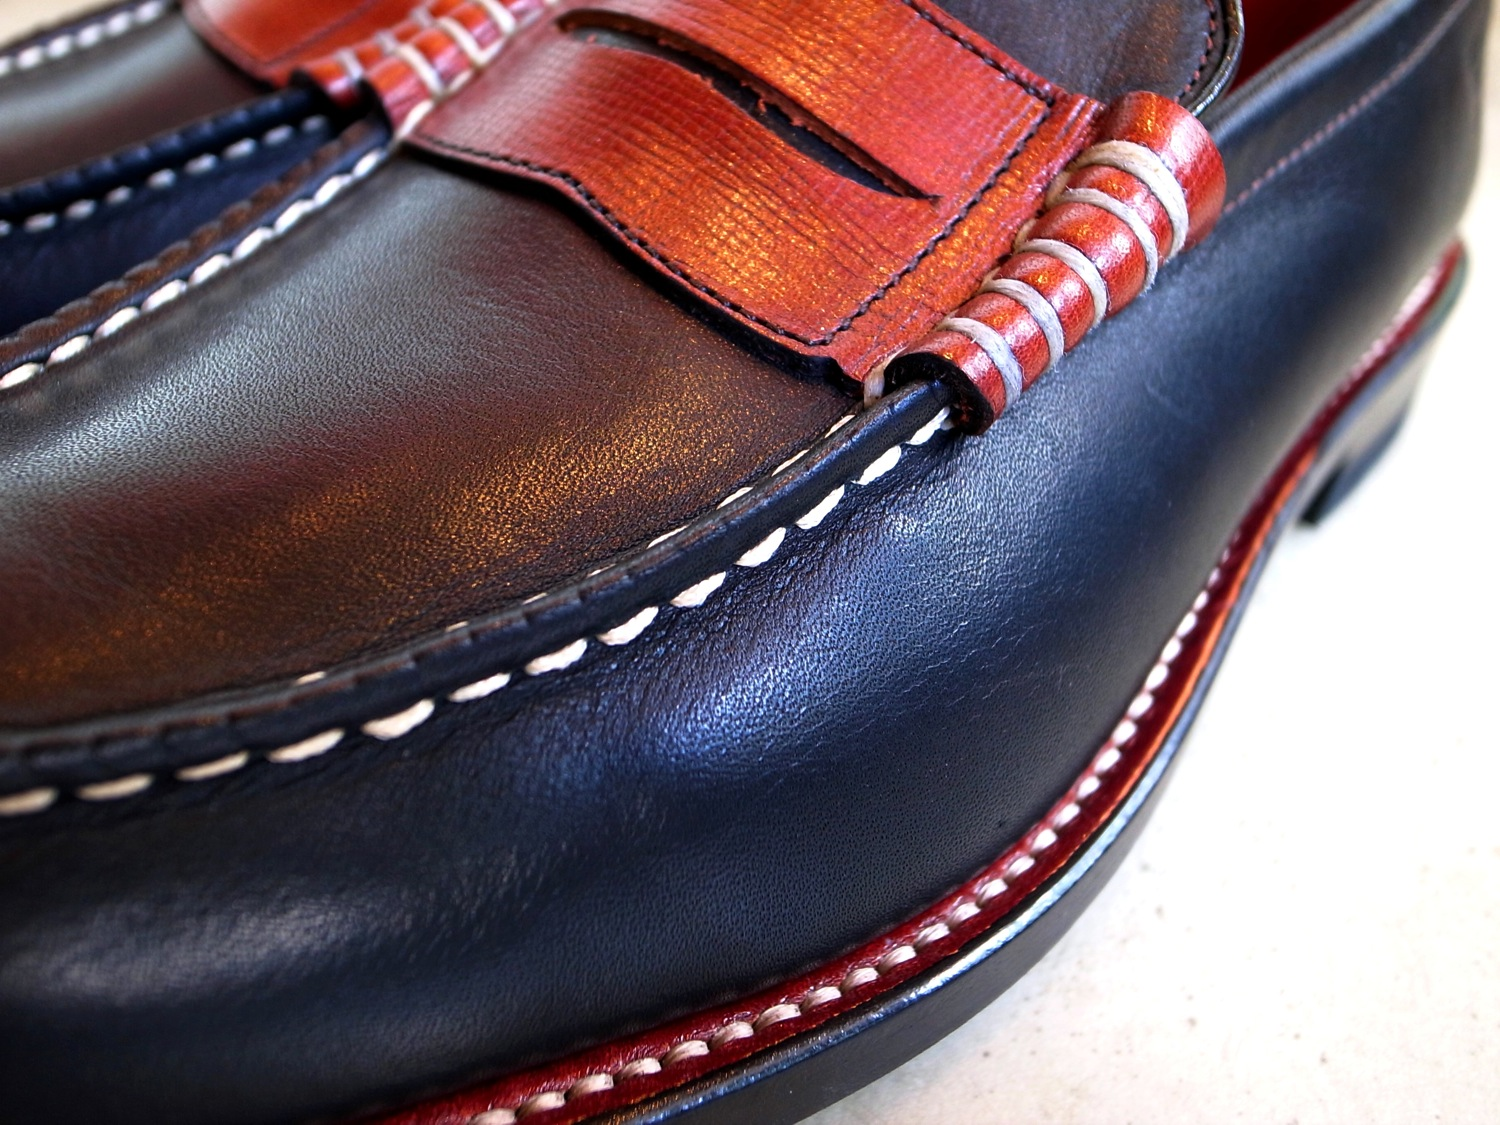 Regal-Loafer-aw12-5